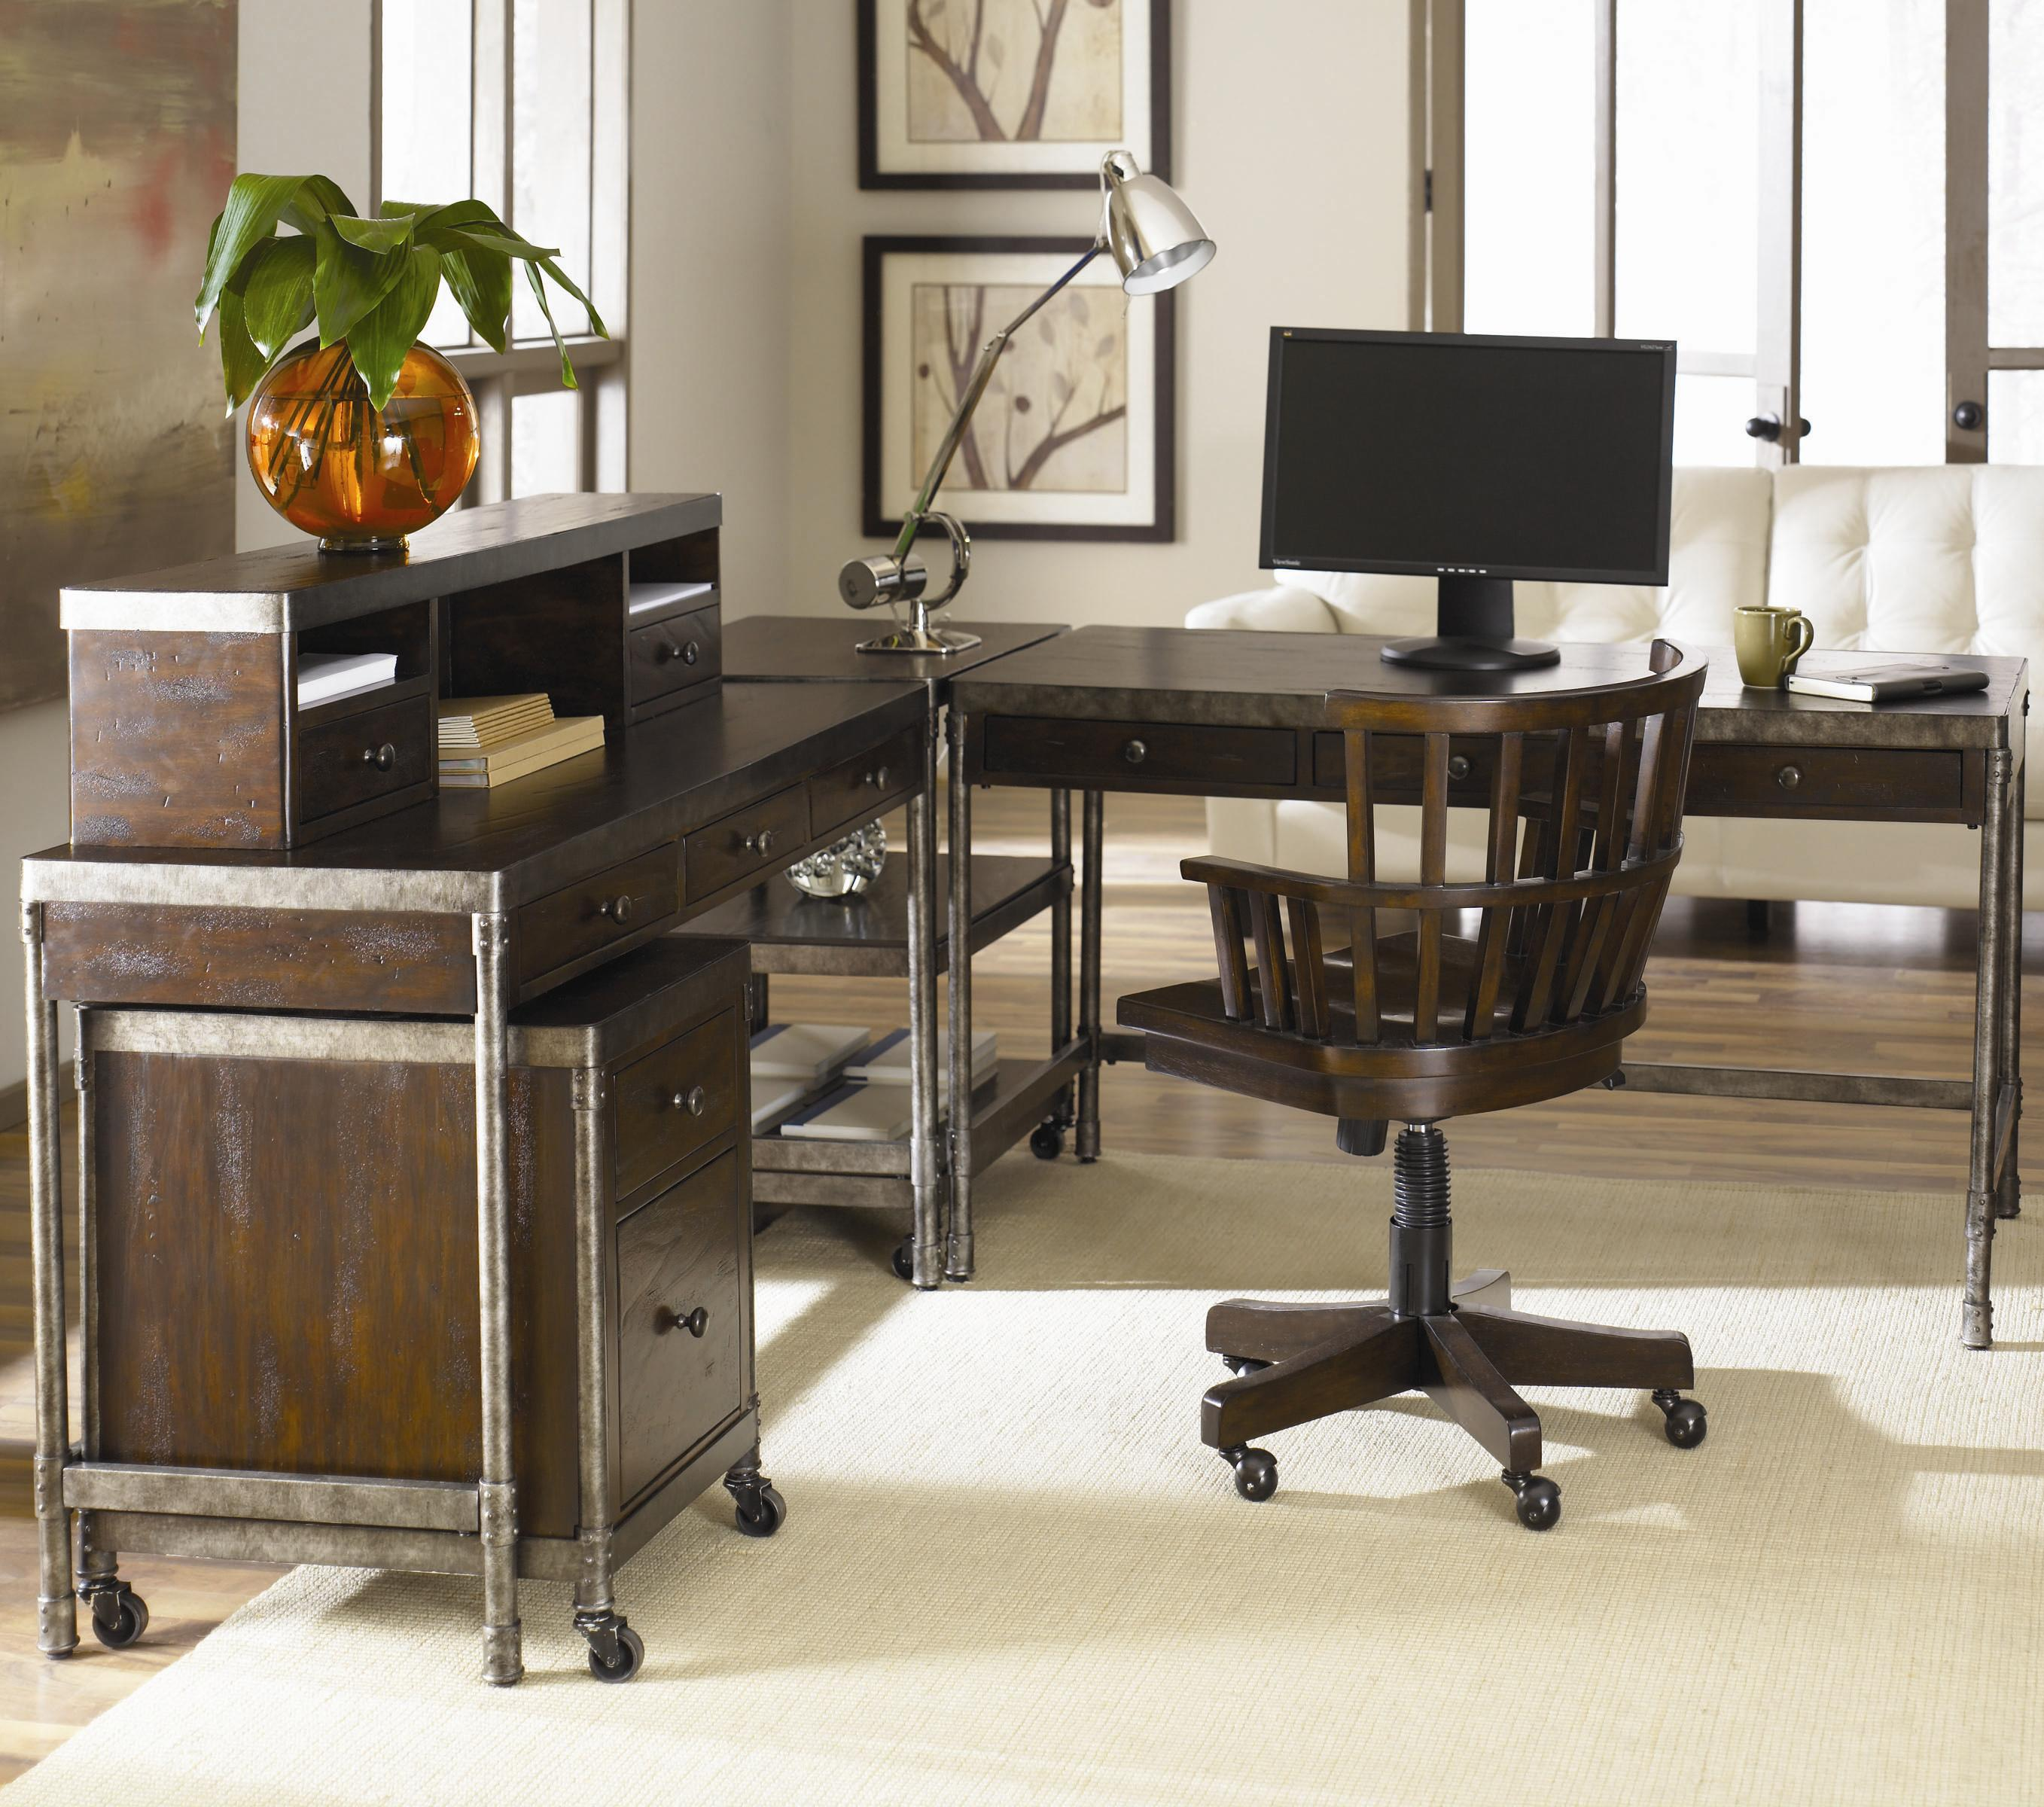 reveal industrial vin etc desk office furniture style yet